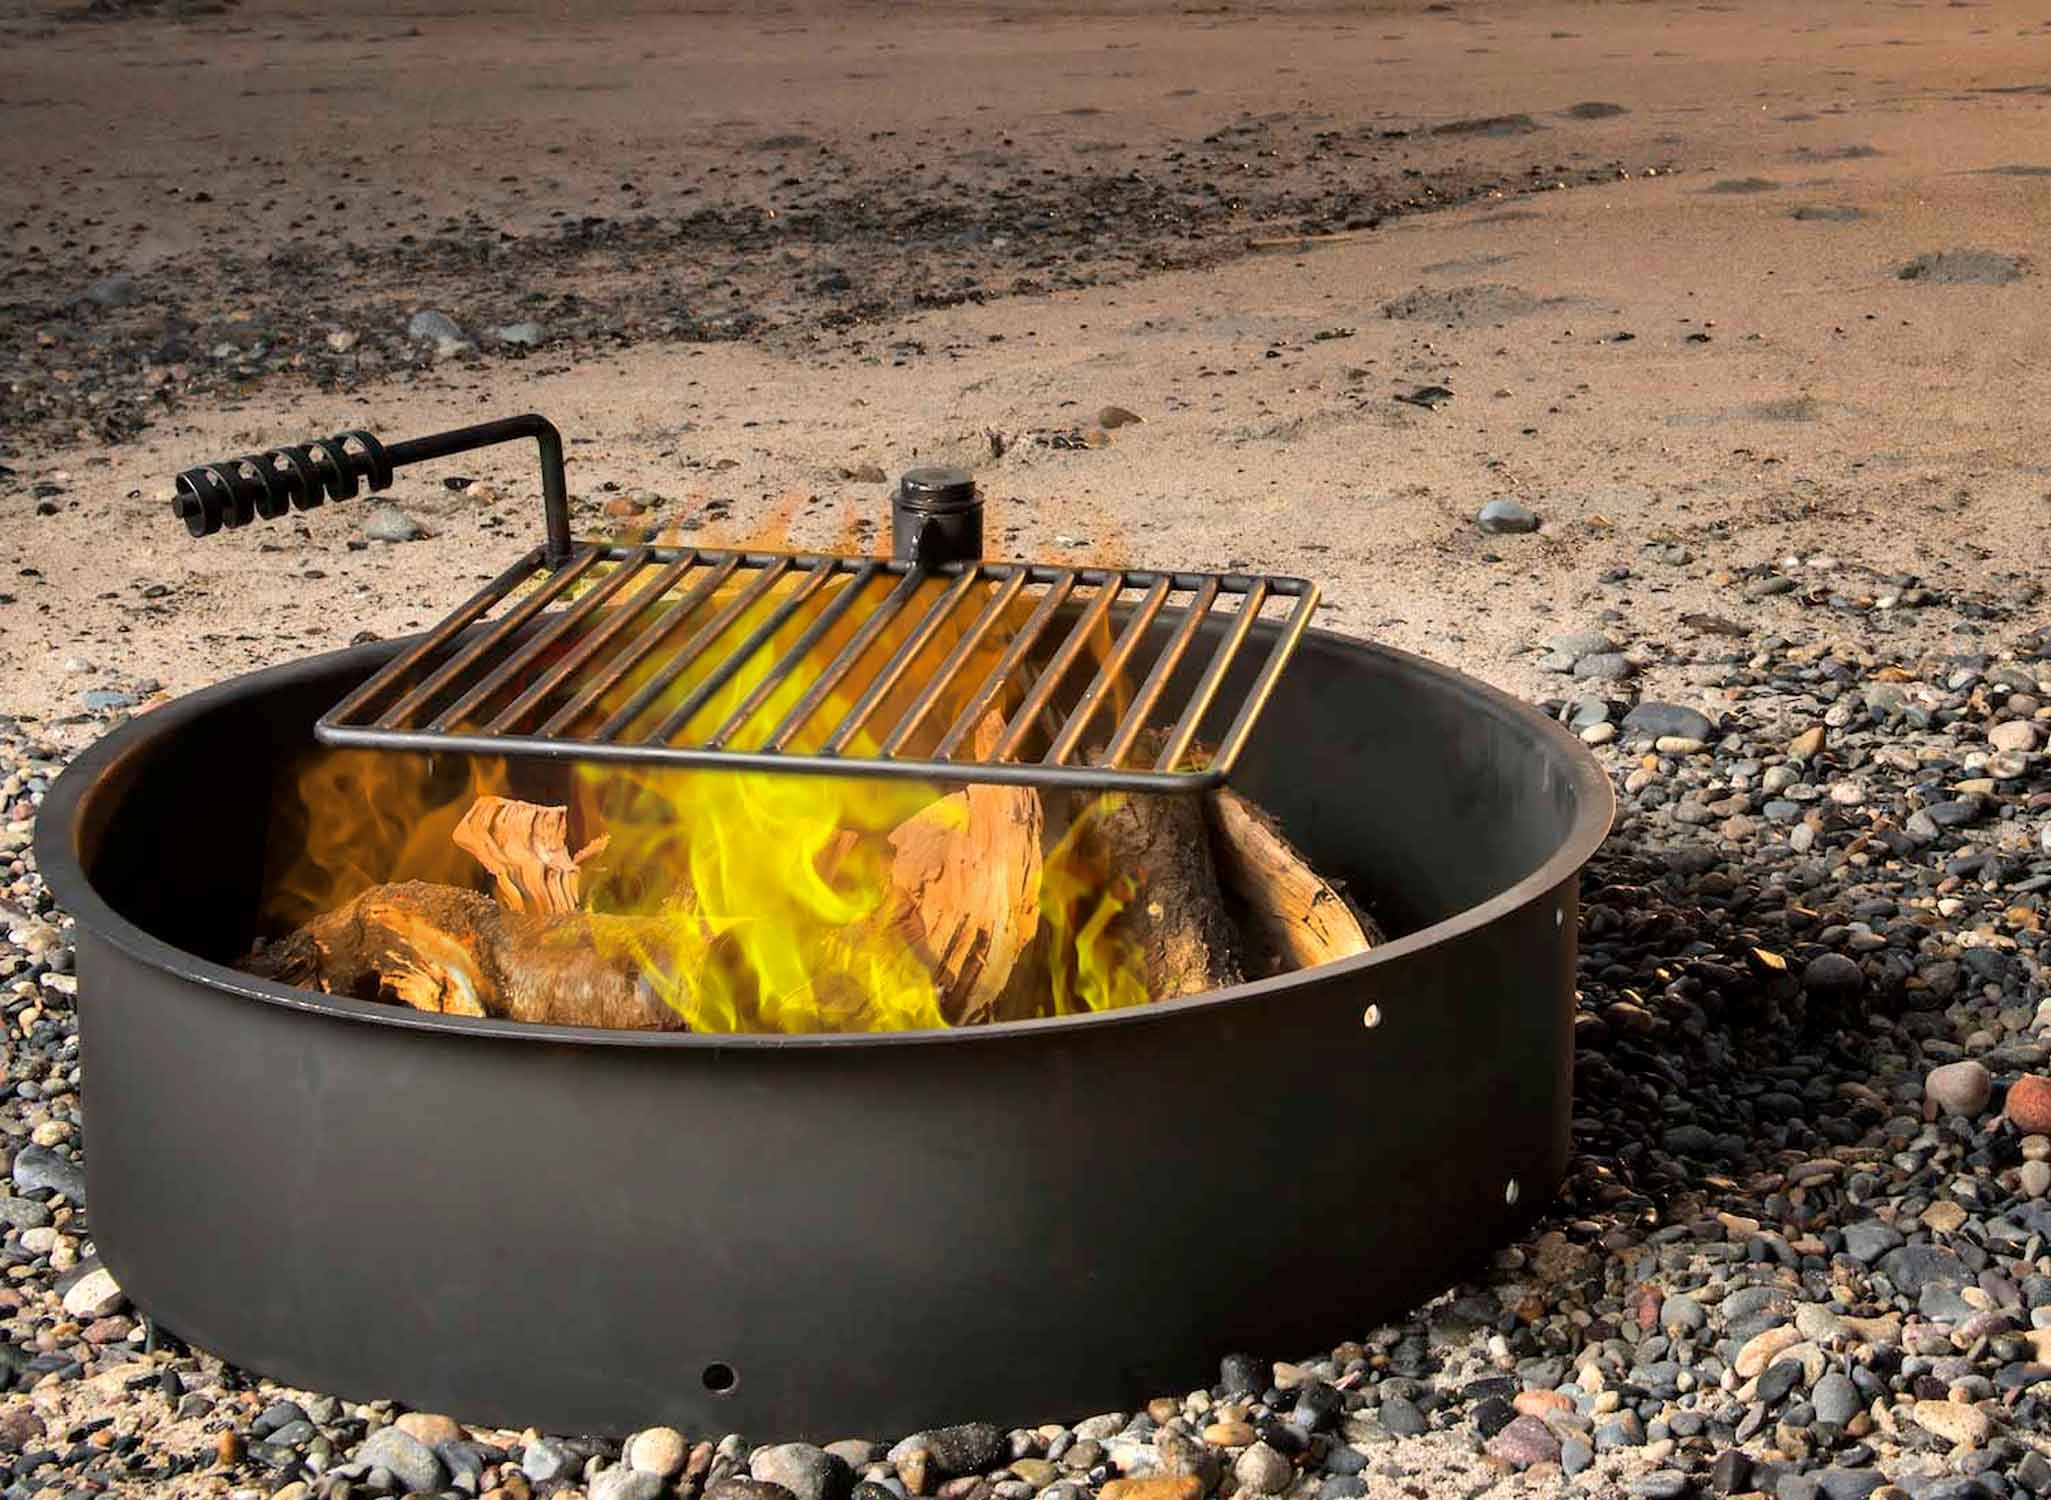 36'' Steel Fire Ring with Cooking Grate Campfire Pit Park Grill BBQ Camping Trail by Titan Outdoors (Image #3)